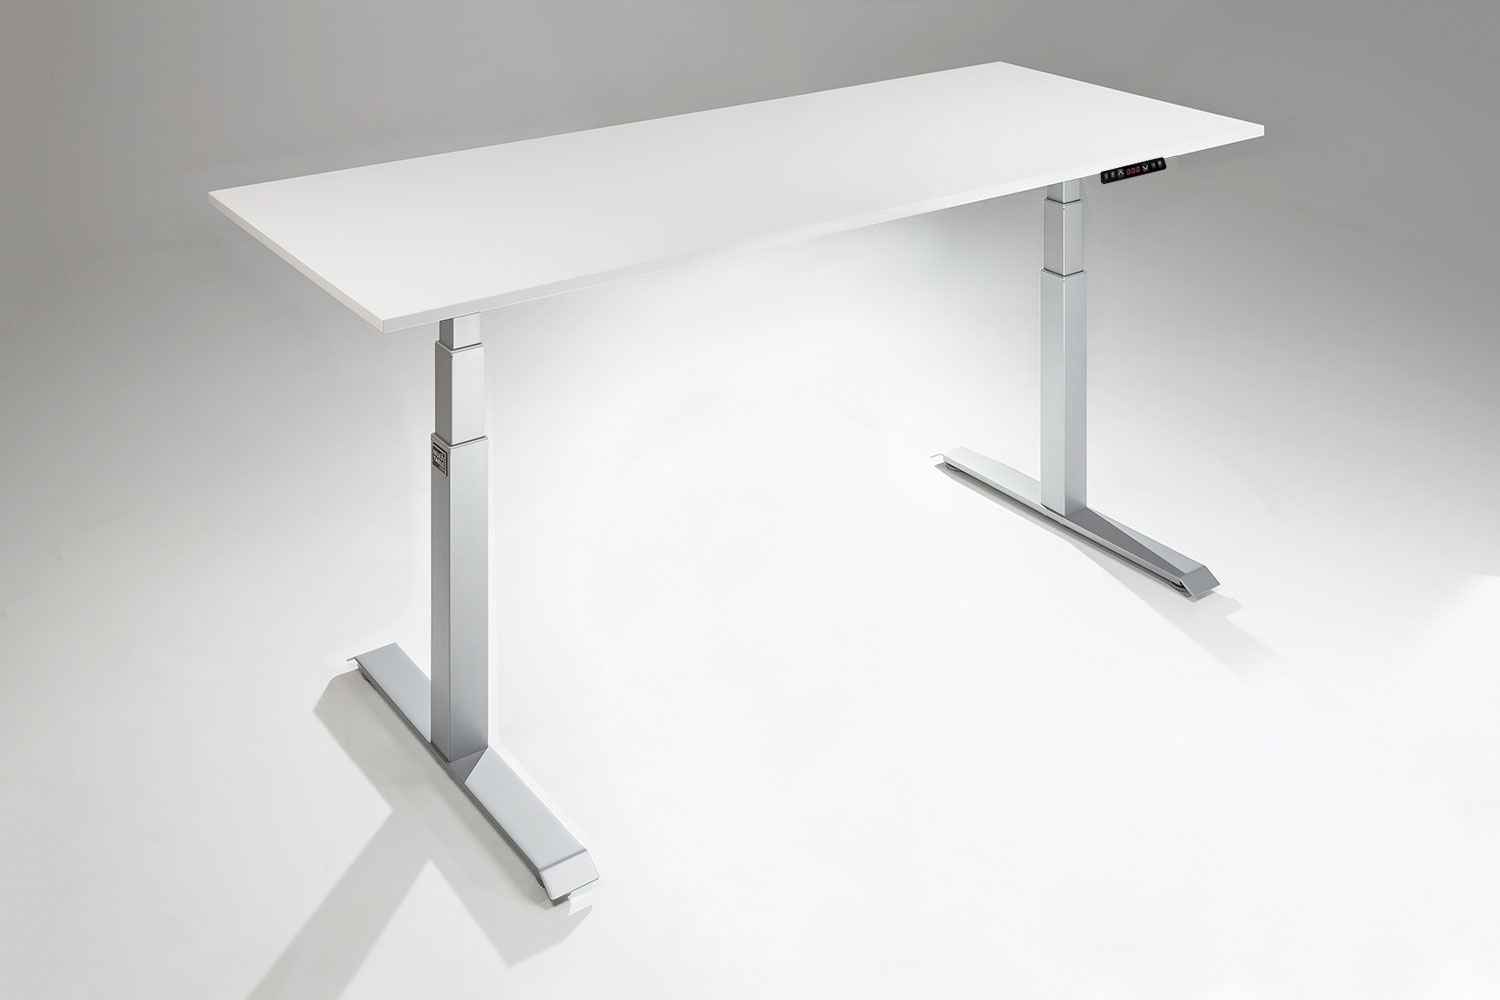 Mod E Pro Height Adjustable Standing Desk Silver Base White Table Top Angled